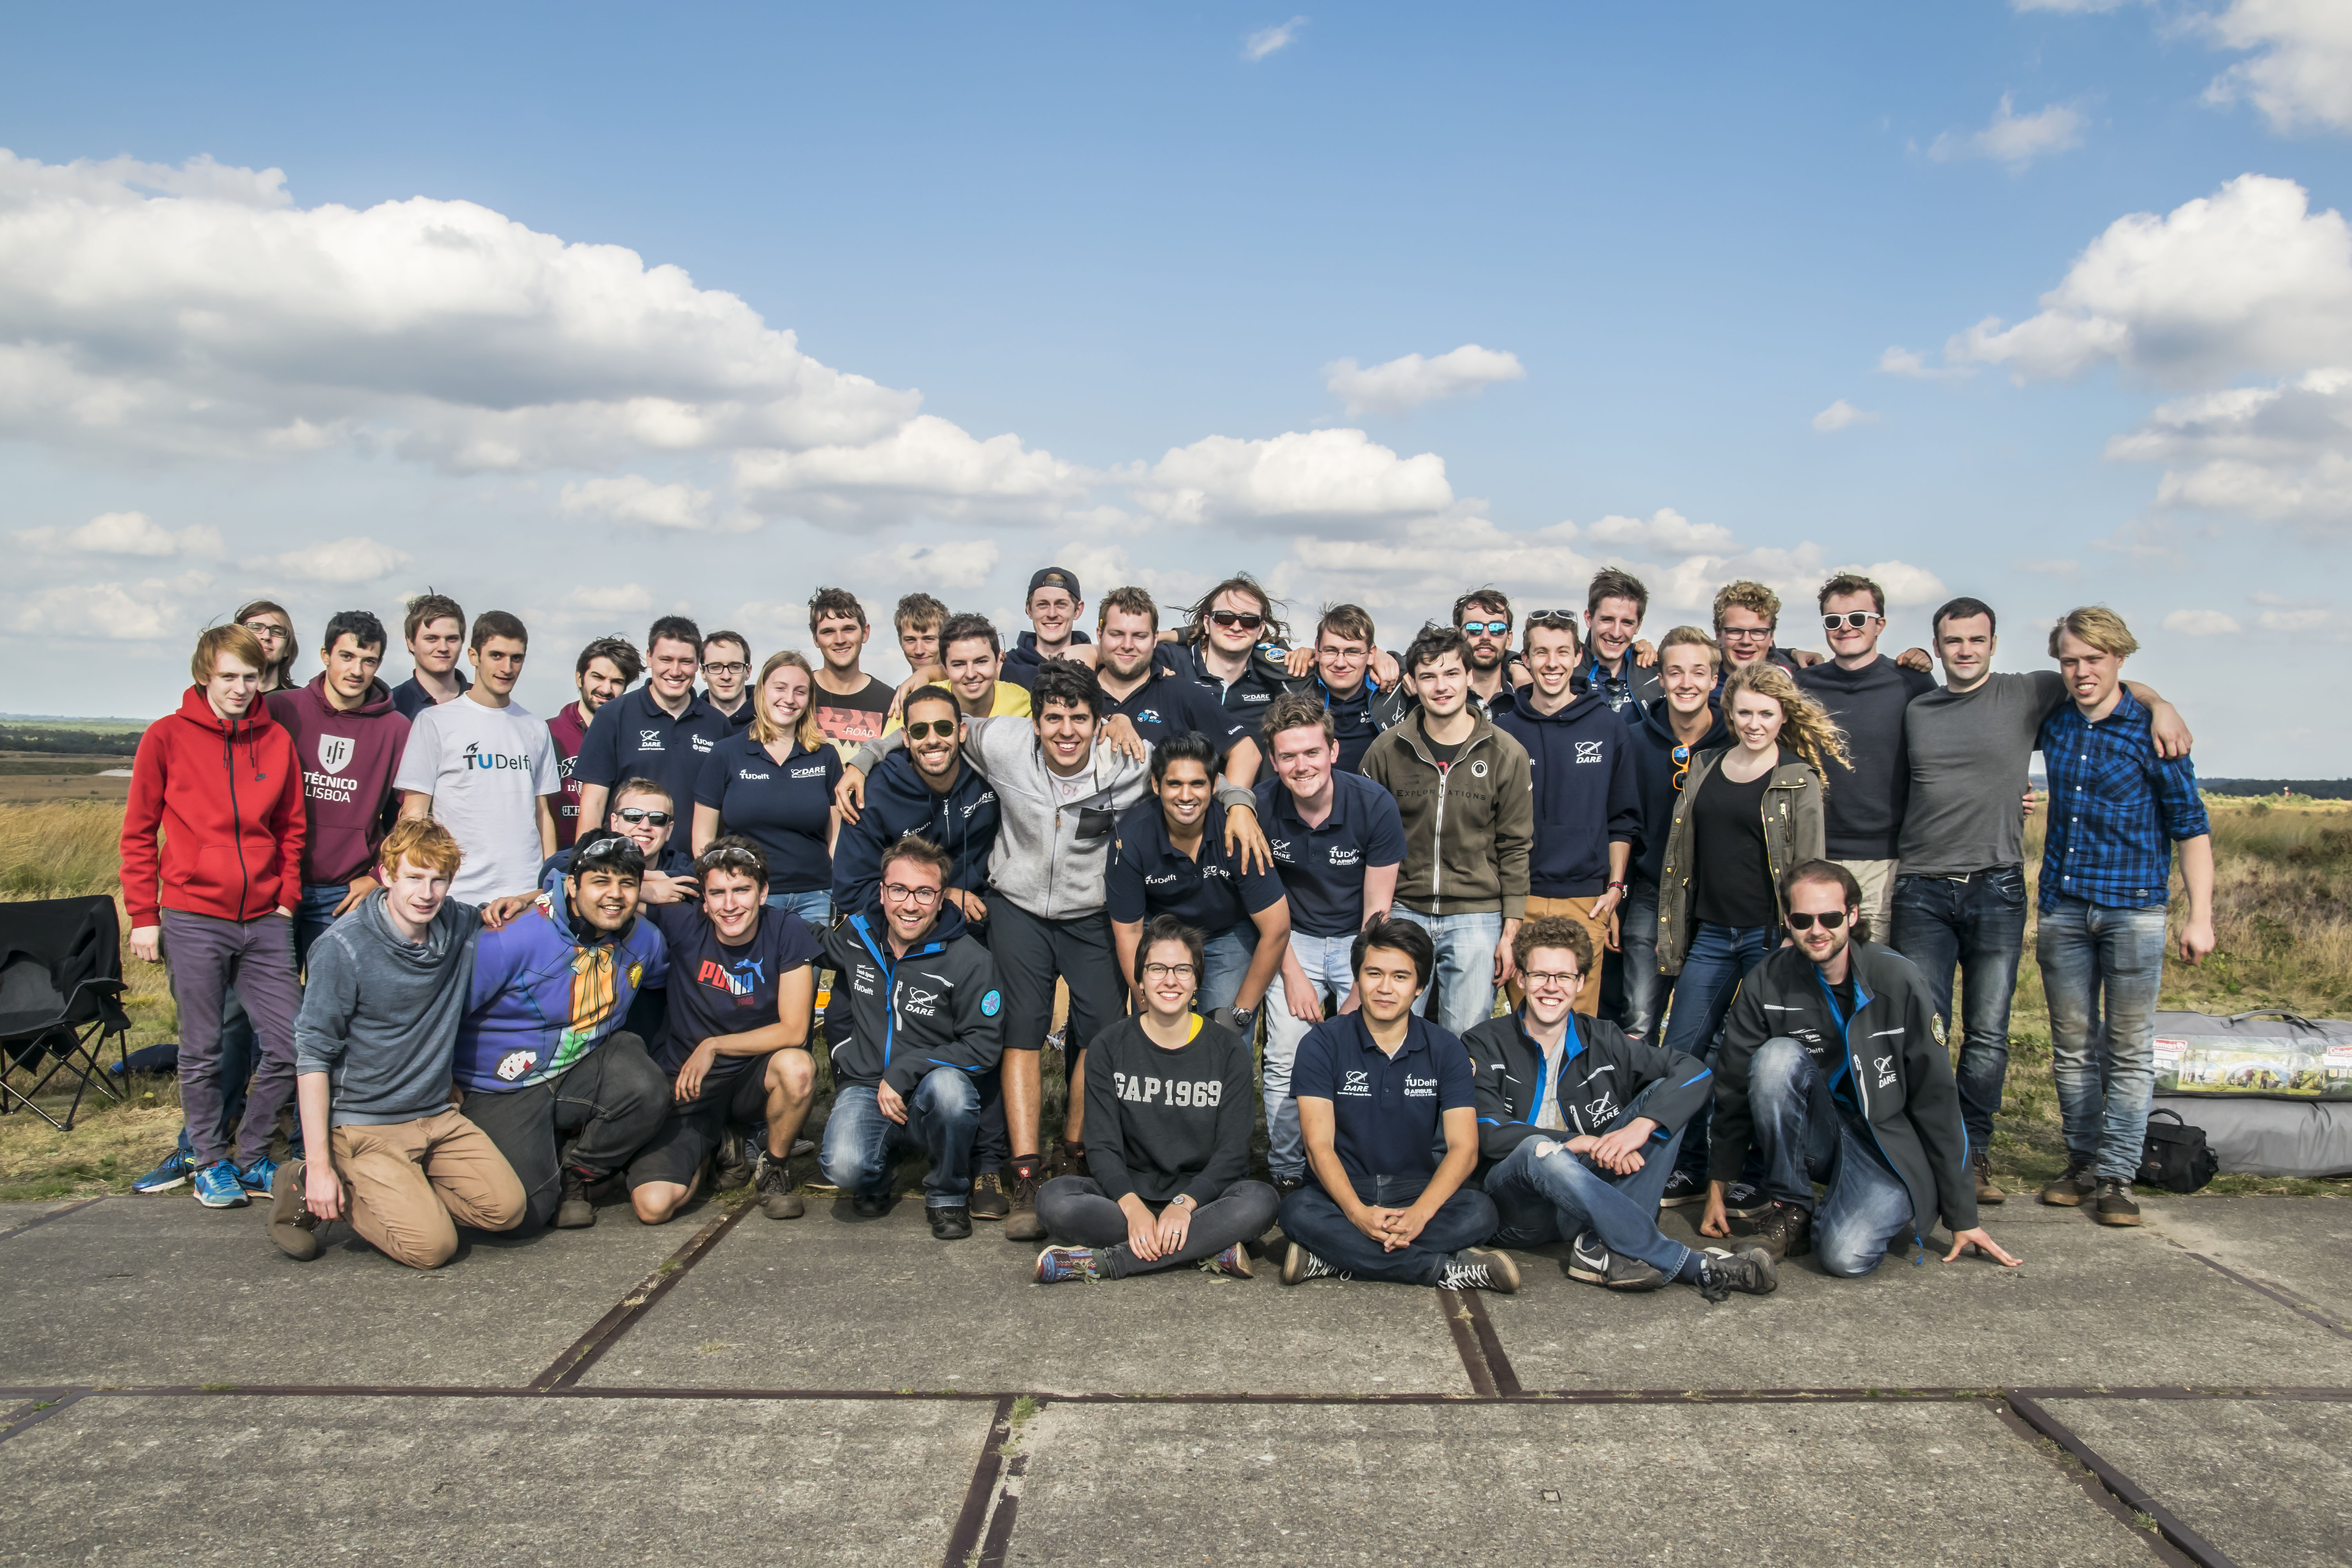 DARE and Aether launch crew at DARE launch day at ASK 't Harde on 23-09-2016